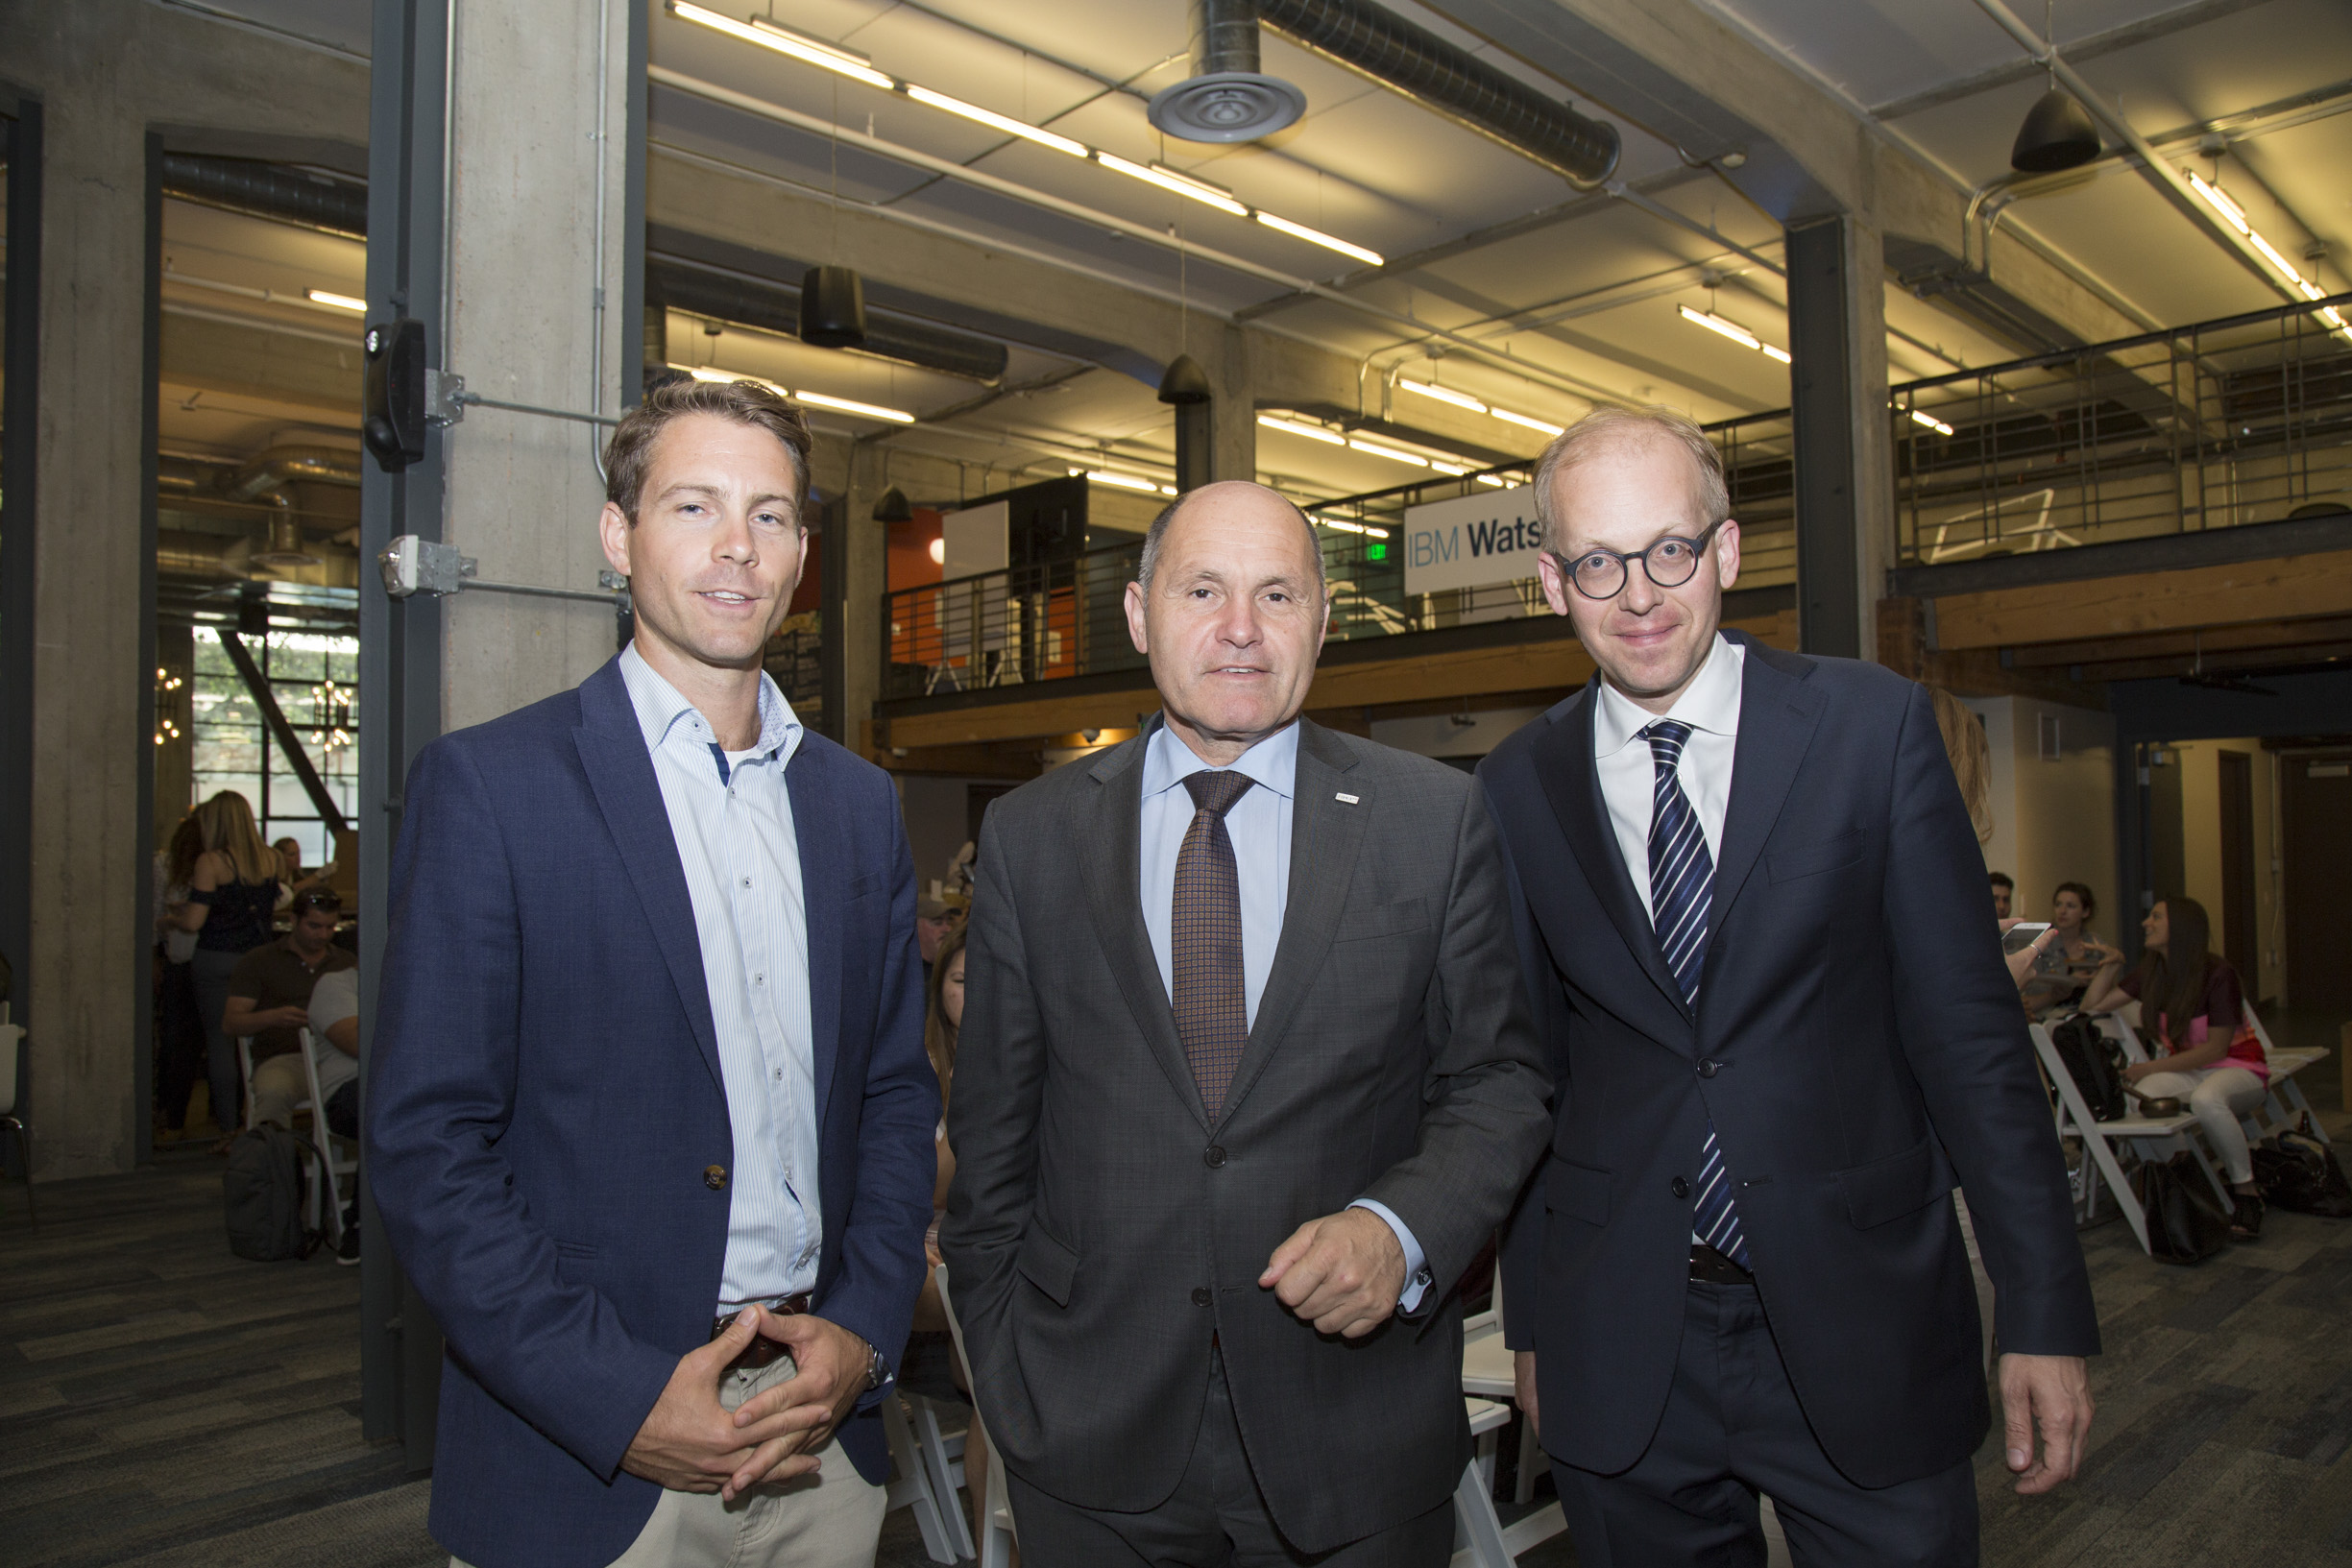 """(from left): Georg Fürlinger (Co-Director at Open Austria & Technology Officer at ADVANTAGE AUSTRIA in San Francisco),Federal Minister Sobotka, Austrian Consul Martin Rauchbauer in San Francisco, CA.         96              Normal   0           false   false   false     EN-US   X-NONE   X-NONE                                                                                                                                                                                                                                                                                                                                                                                                                                                                                                                                                                                                                                                                                                                                                                                                                                                                                     /* Style Definitions */ table.MsoNormalTable {mso-style-name:""""Table Normal""""; mso-tstyle-rowband-size:0; mso-tstyle-colband-size:0; mso-style-noshow:yes; mso-style-priority:99; mso-style-parent:""""""""; mso-padding-alt:0in 5.4pt 0in 5.4pt; mso-para-margin:0in; mso-para-margin-bottom:.0001pt; mso-pagination:widow-orphan; font-size:12.0pt; font-family:Calibri; mso-ascii-font-family:Calibri; mso-ascii-theme-font:minor-latin; mso-hansi-font-family:Calibri; mso-hansi-theme-font:minor-latin;}     Photo: BMI/ Jürgen Makowecz"""